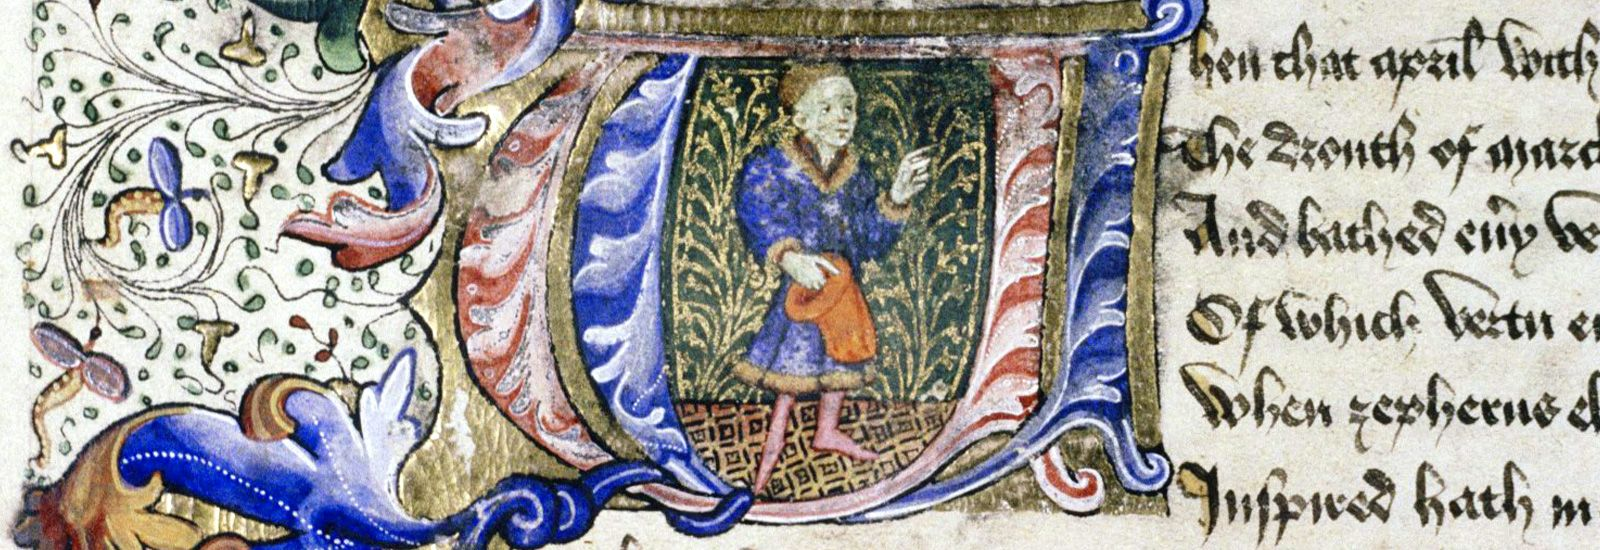 Detail of a manuscript in the Bodleian Library.